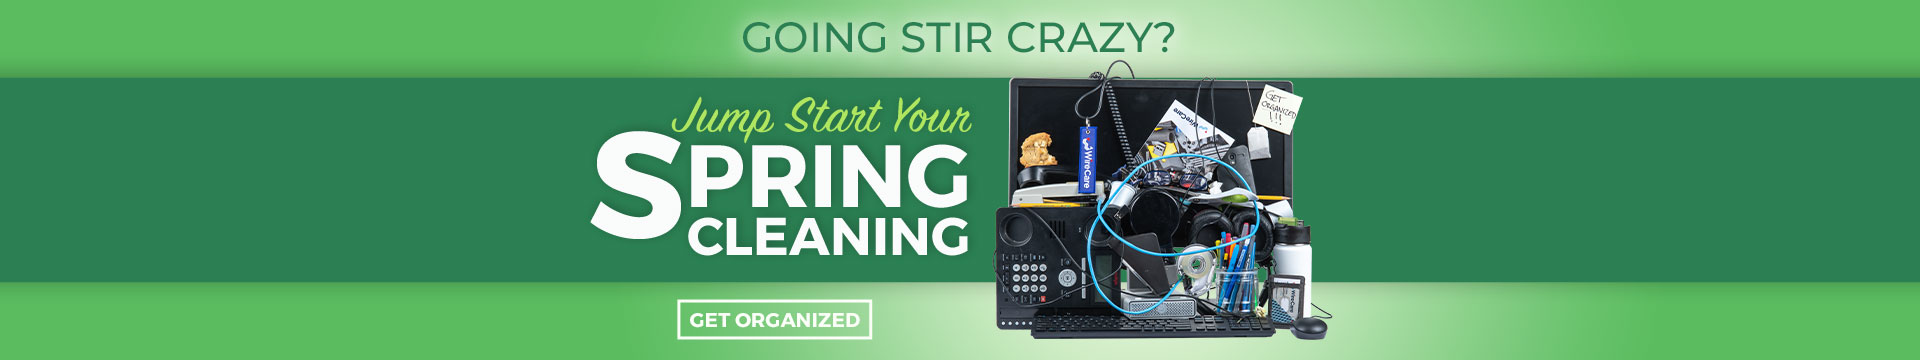 Jump Start Your Spring Cleaning